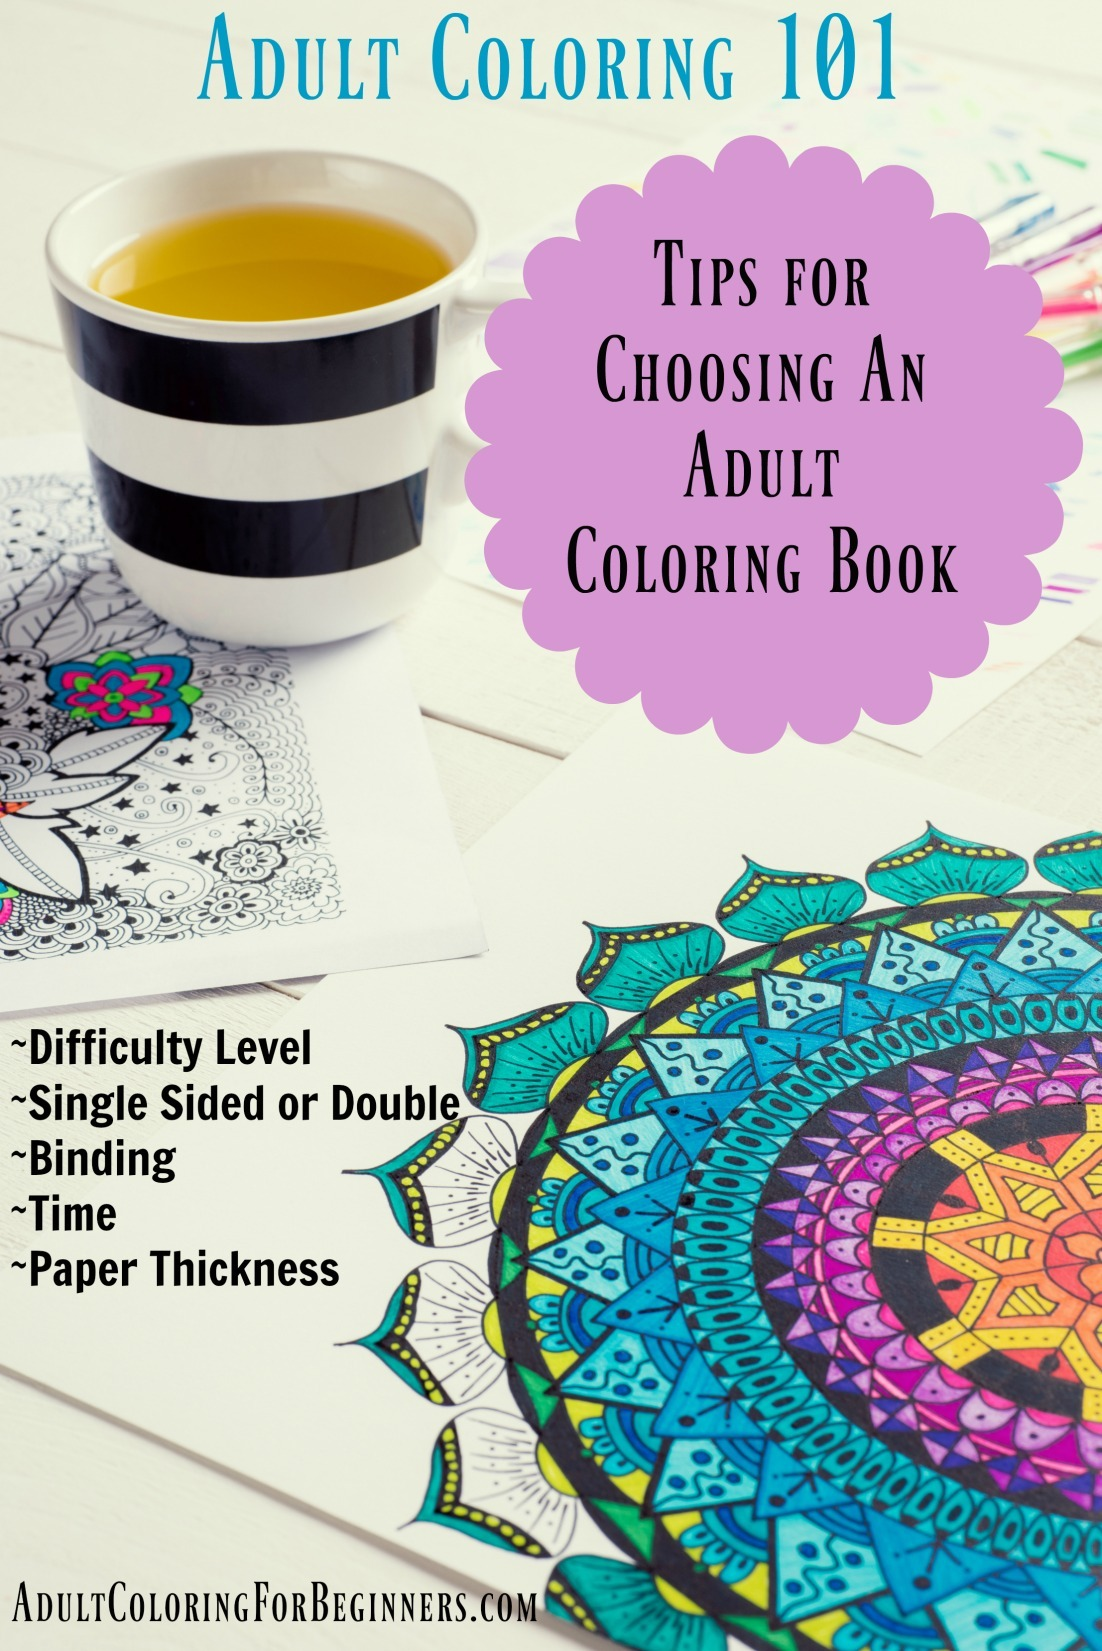 Adult Coloring 101  Choosing An Adult Coloring Book